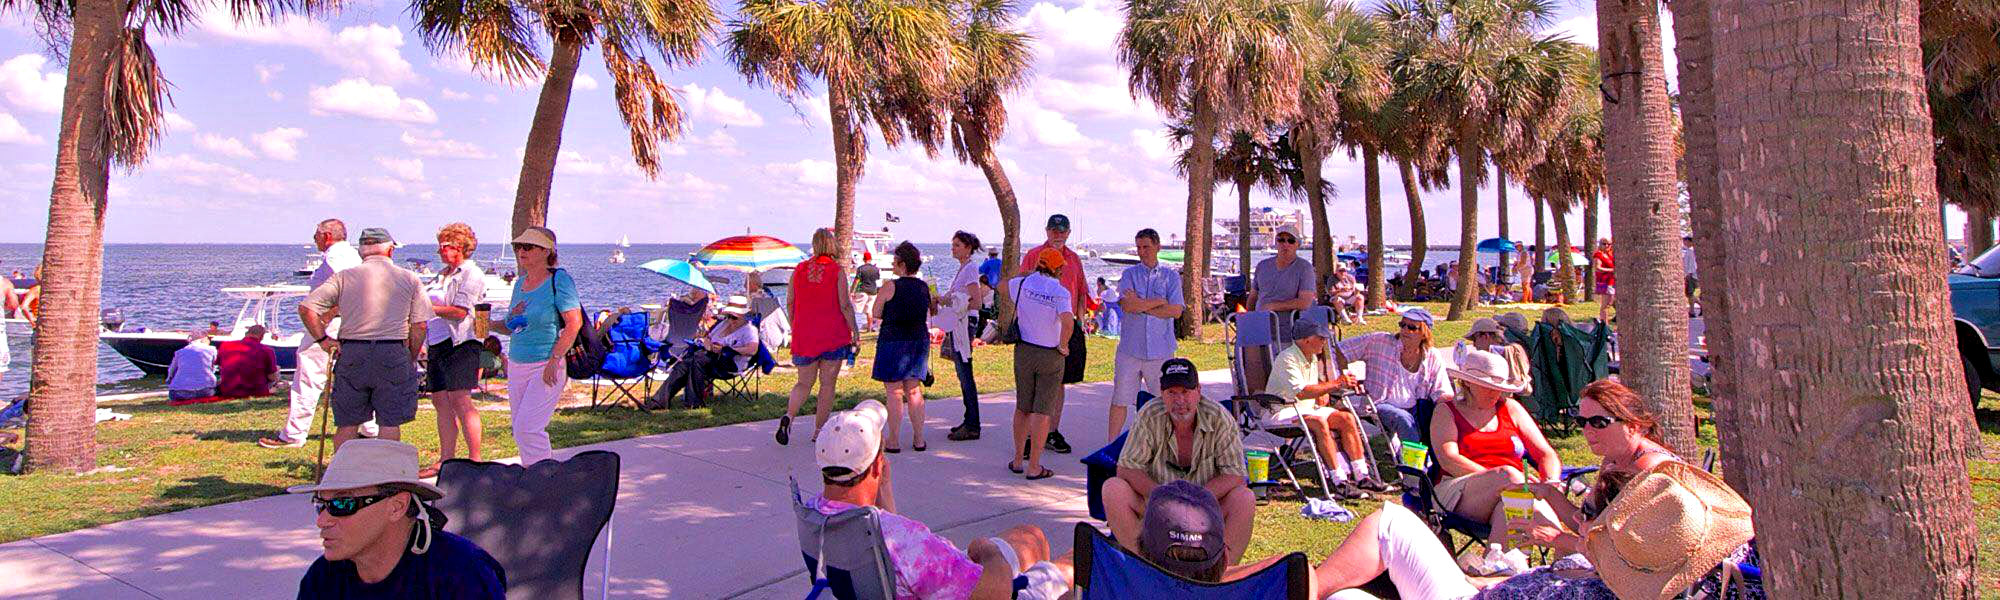 Tampa Bay Blues Festival-goers stroll a path along the bay.